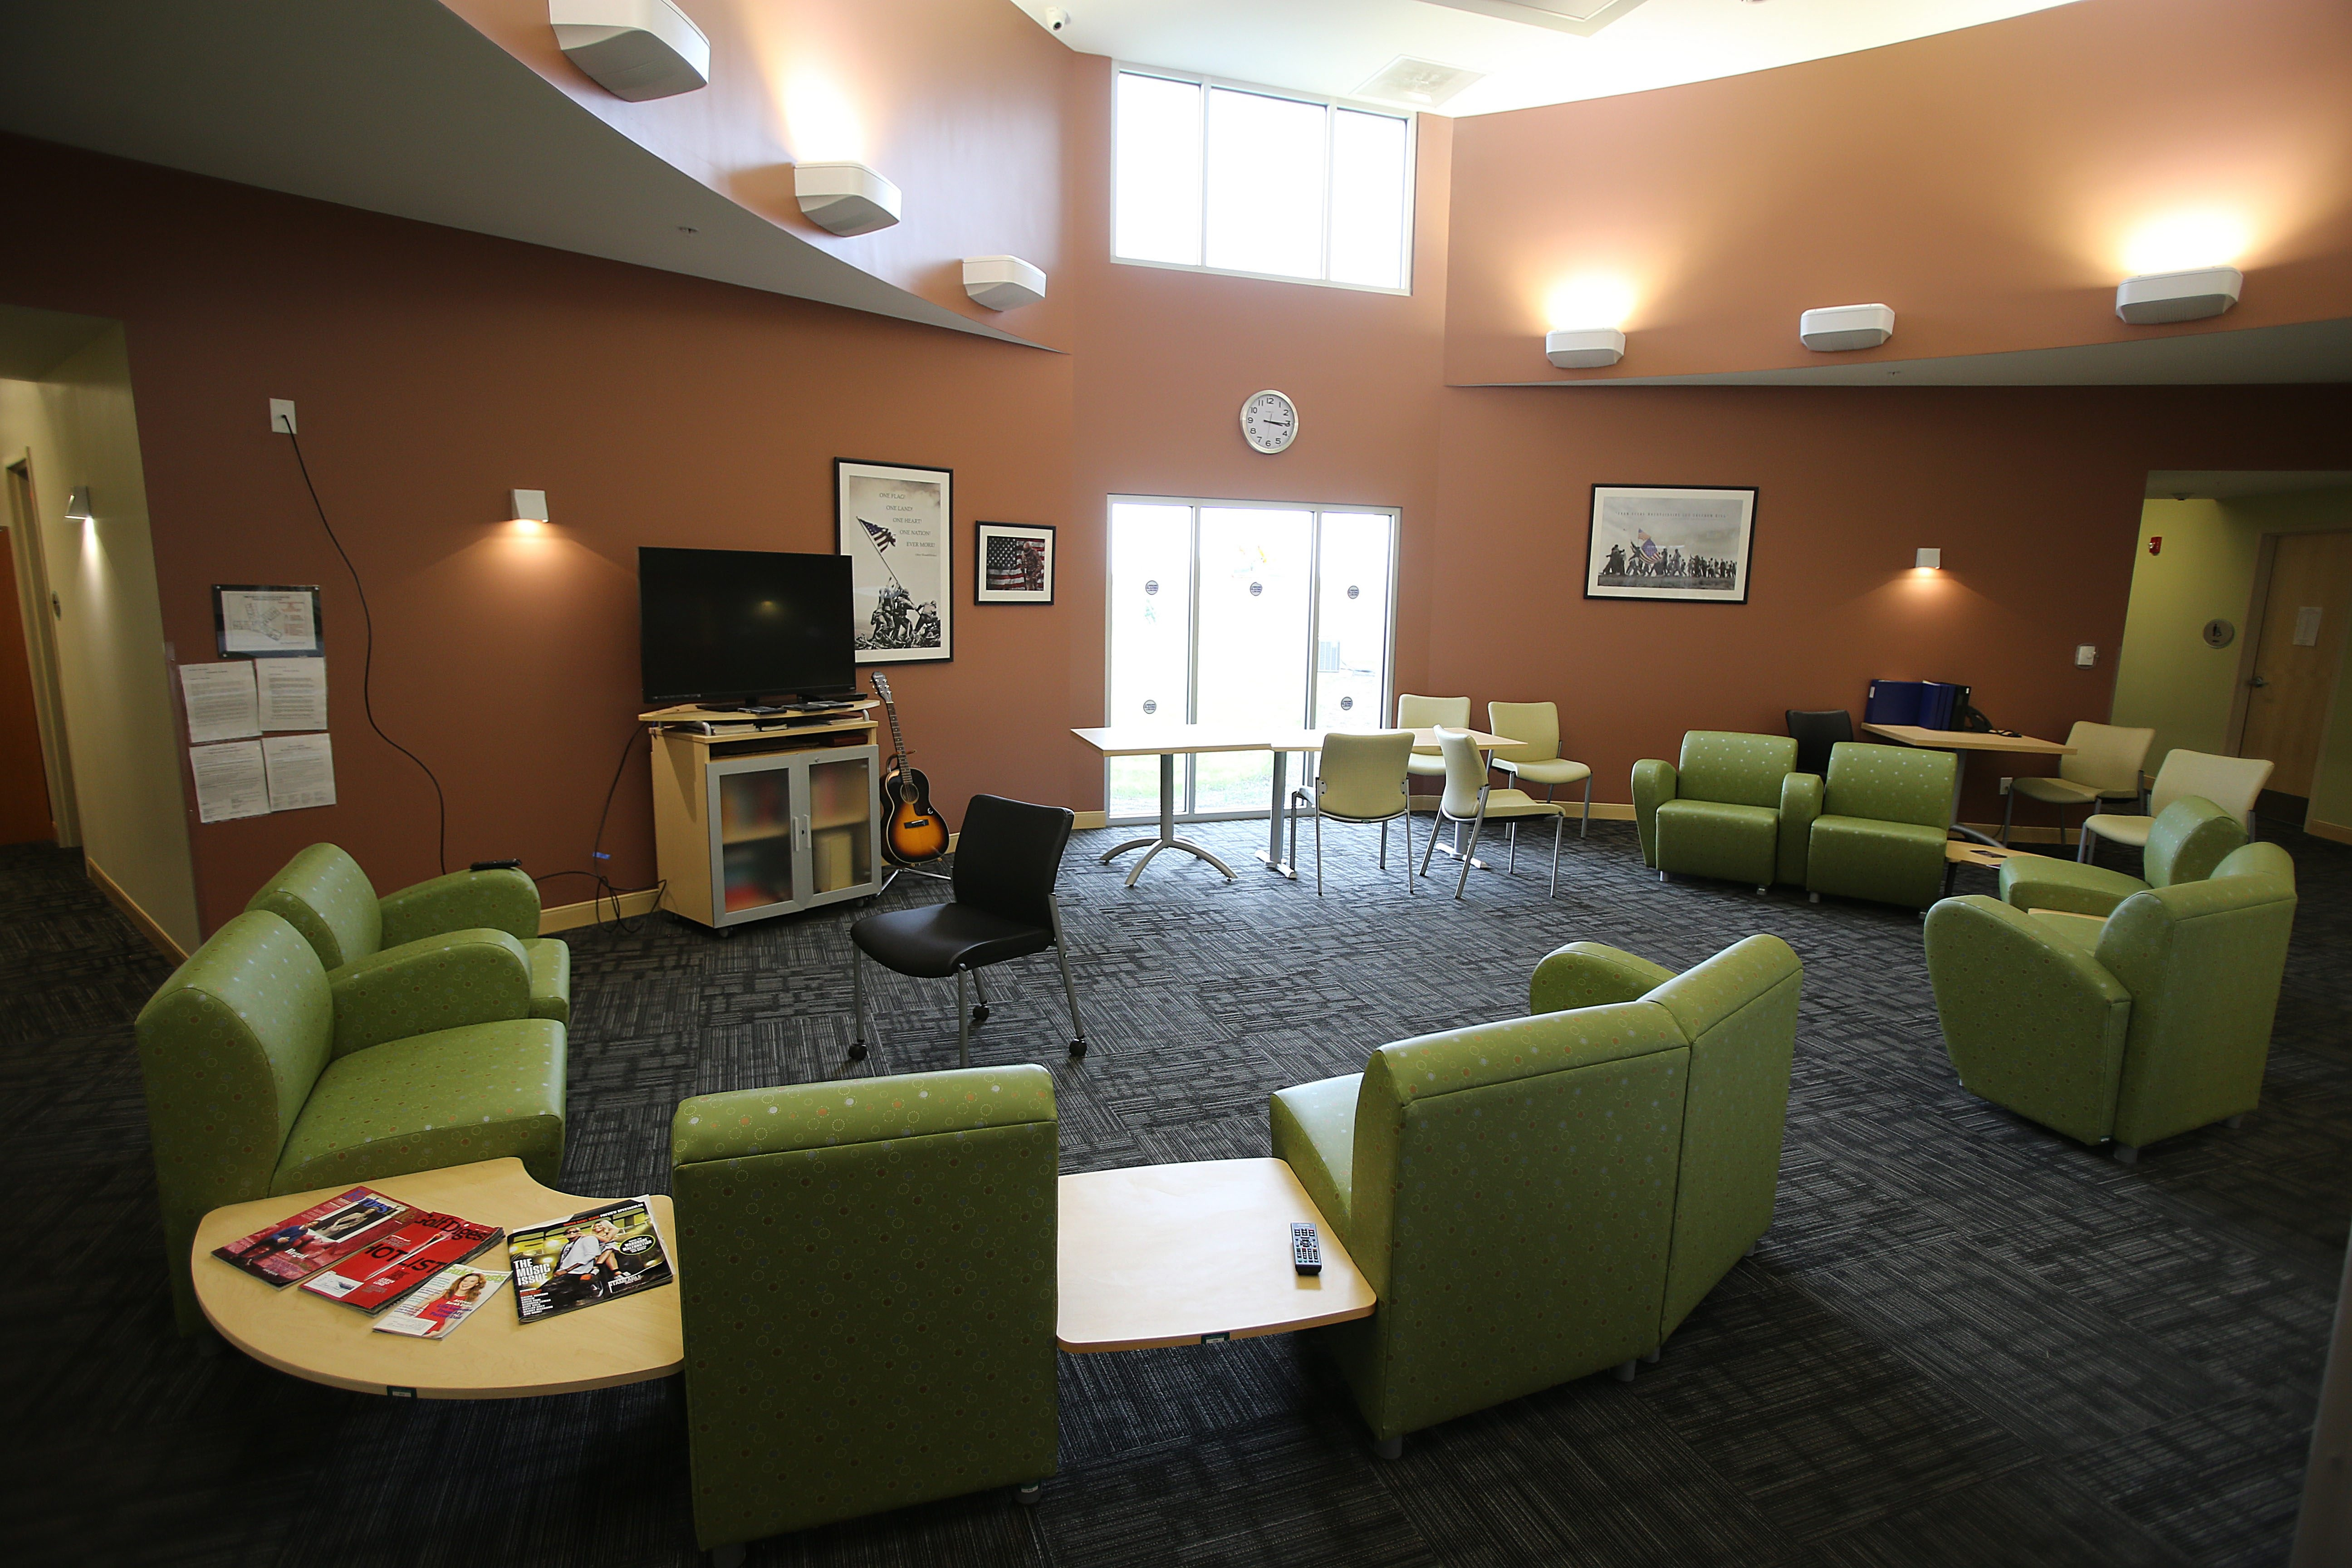 The common room at Horizon Village's Veteran's Residential Treatment Facility in Sanborn on May 16.